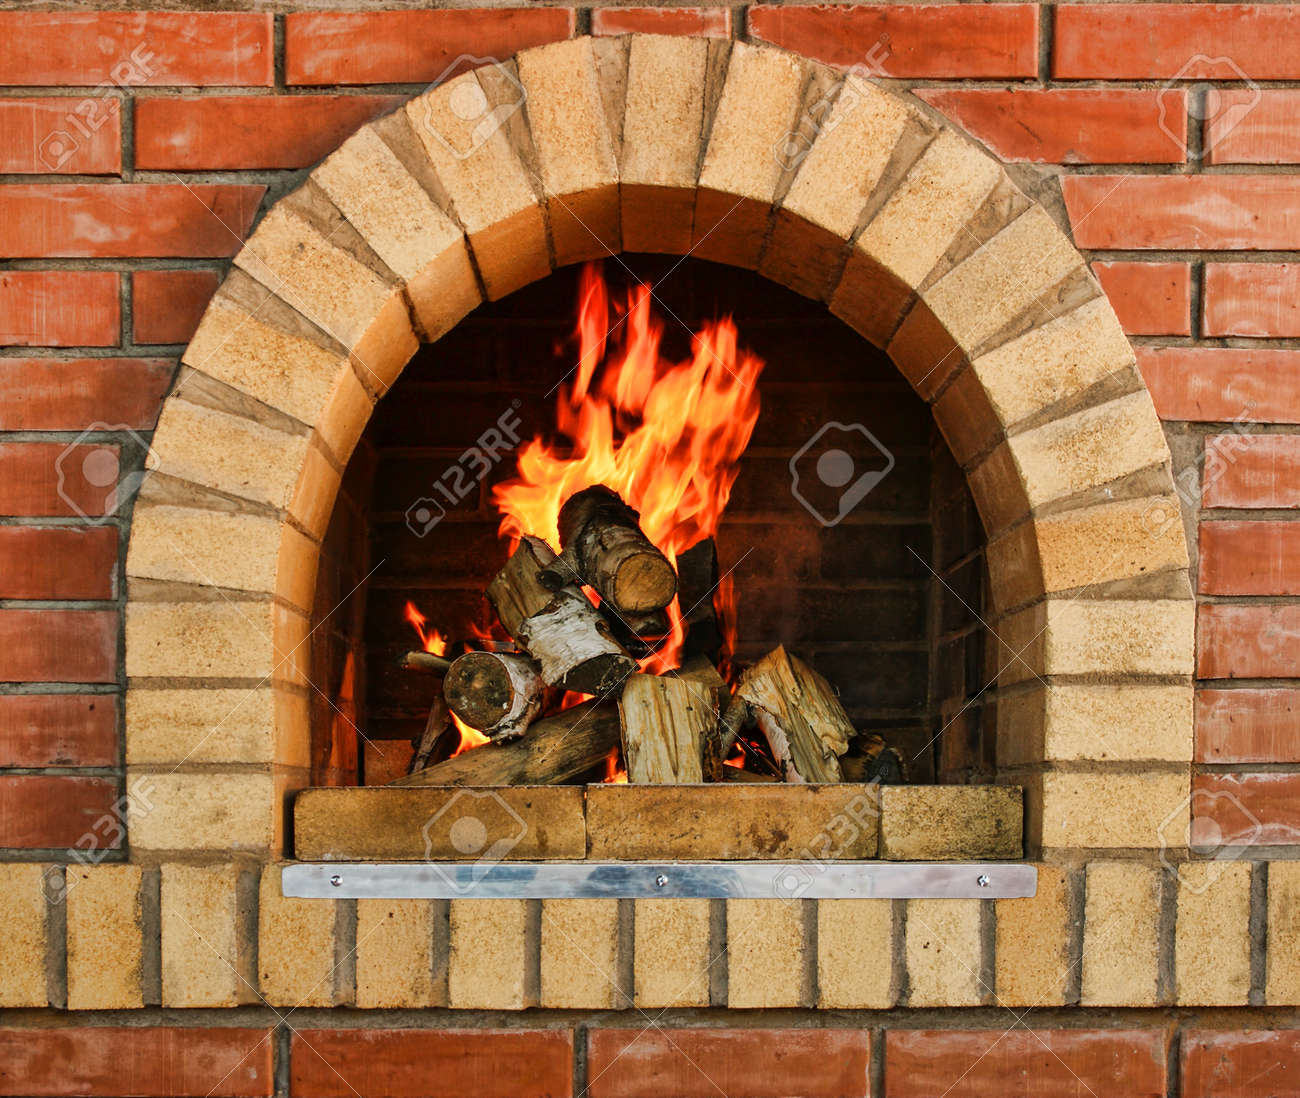 Russian interior kitchen with an oven and a burning fire Stock Photo - 18812510